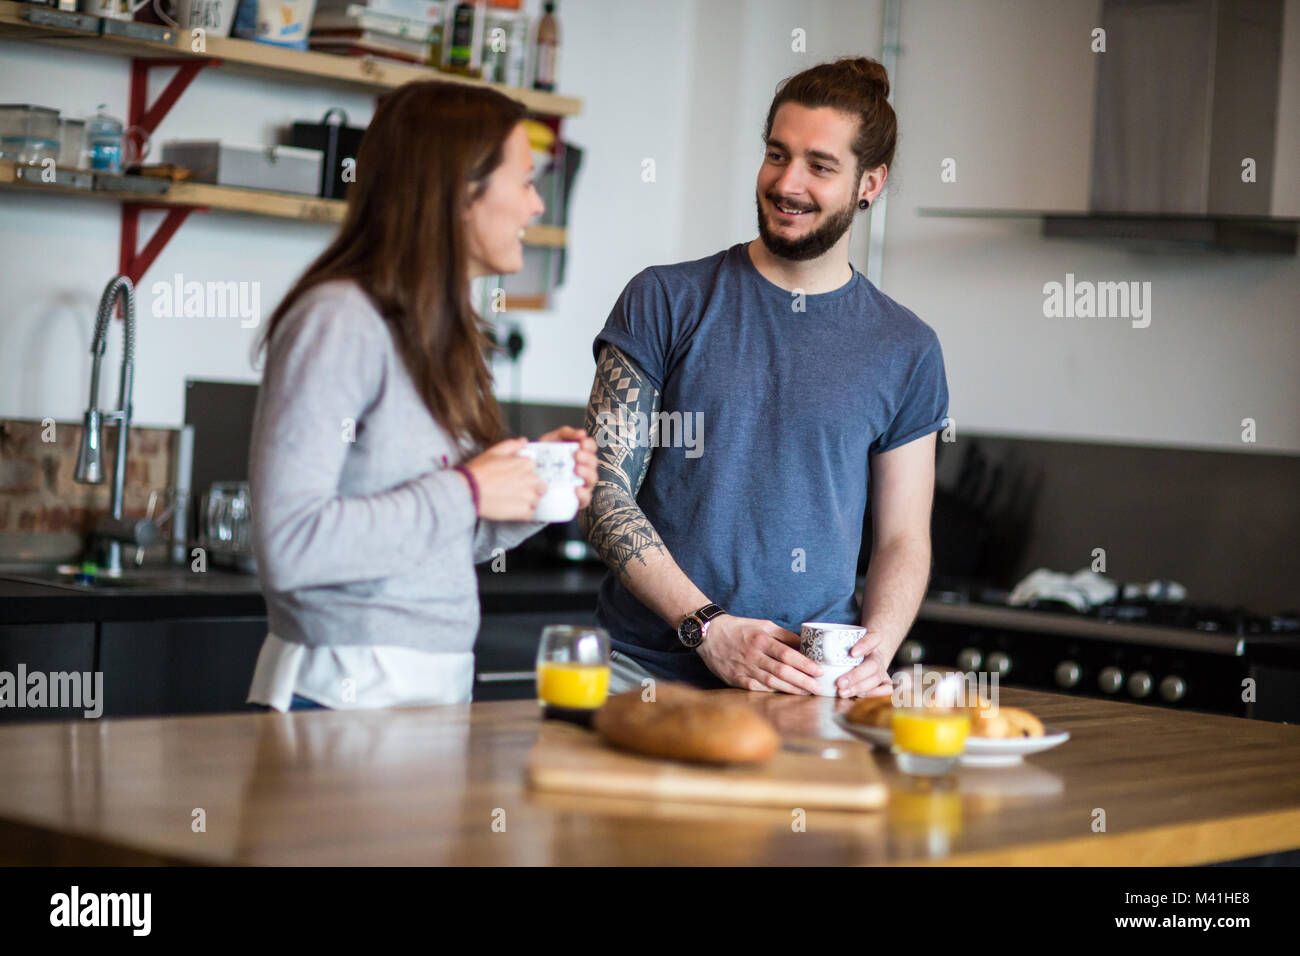 Young couple enjoying breakfast together - Stock Image